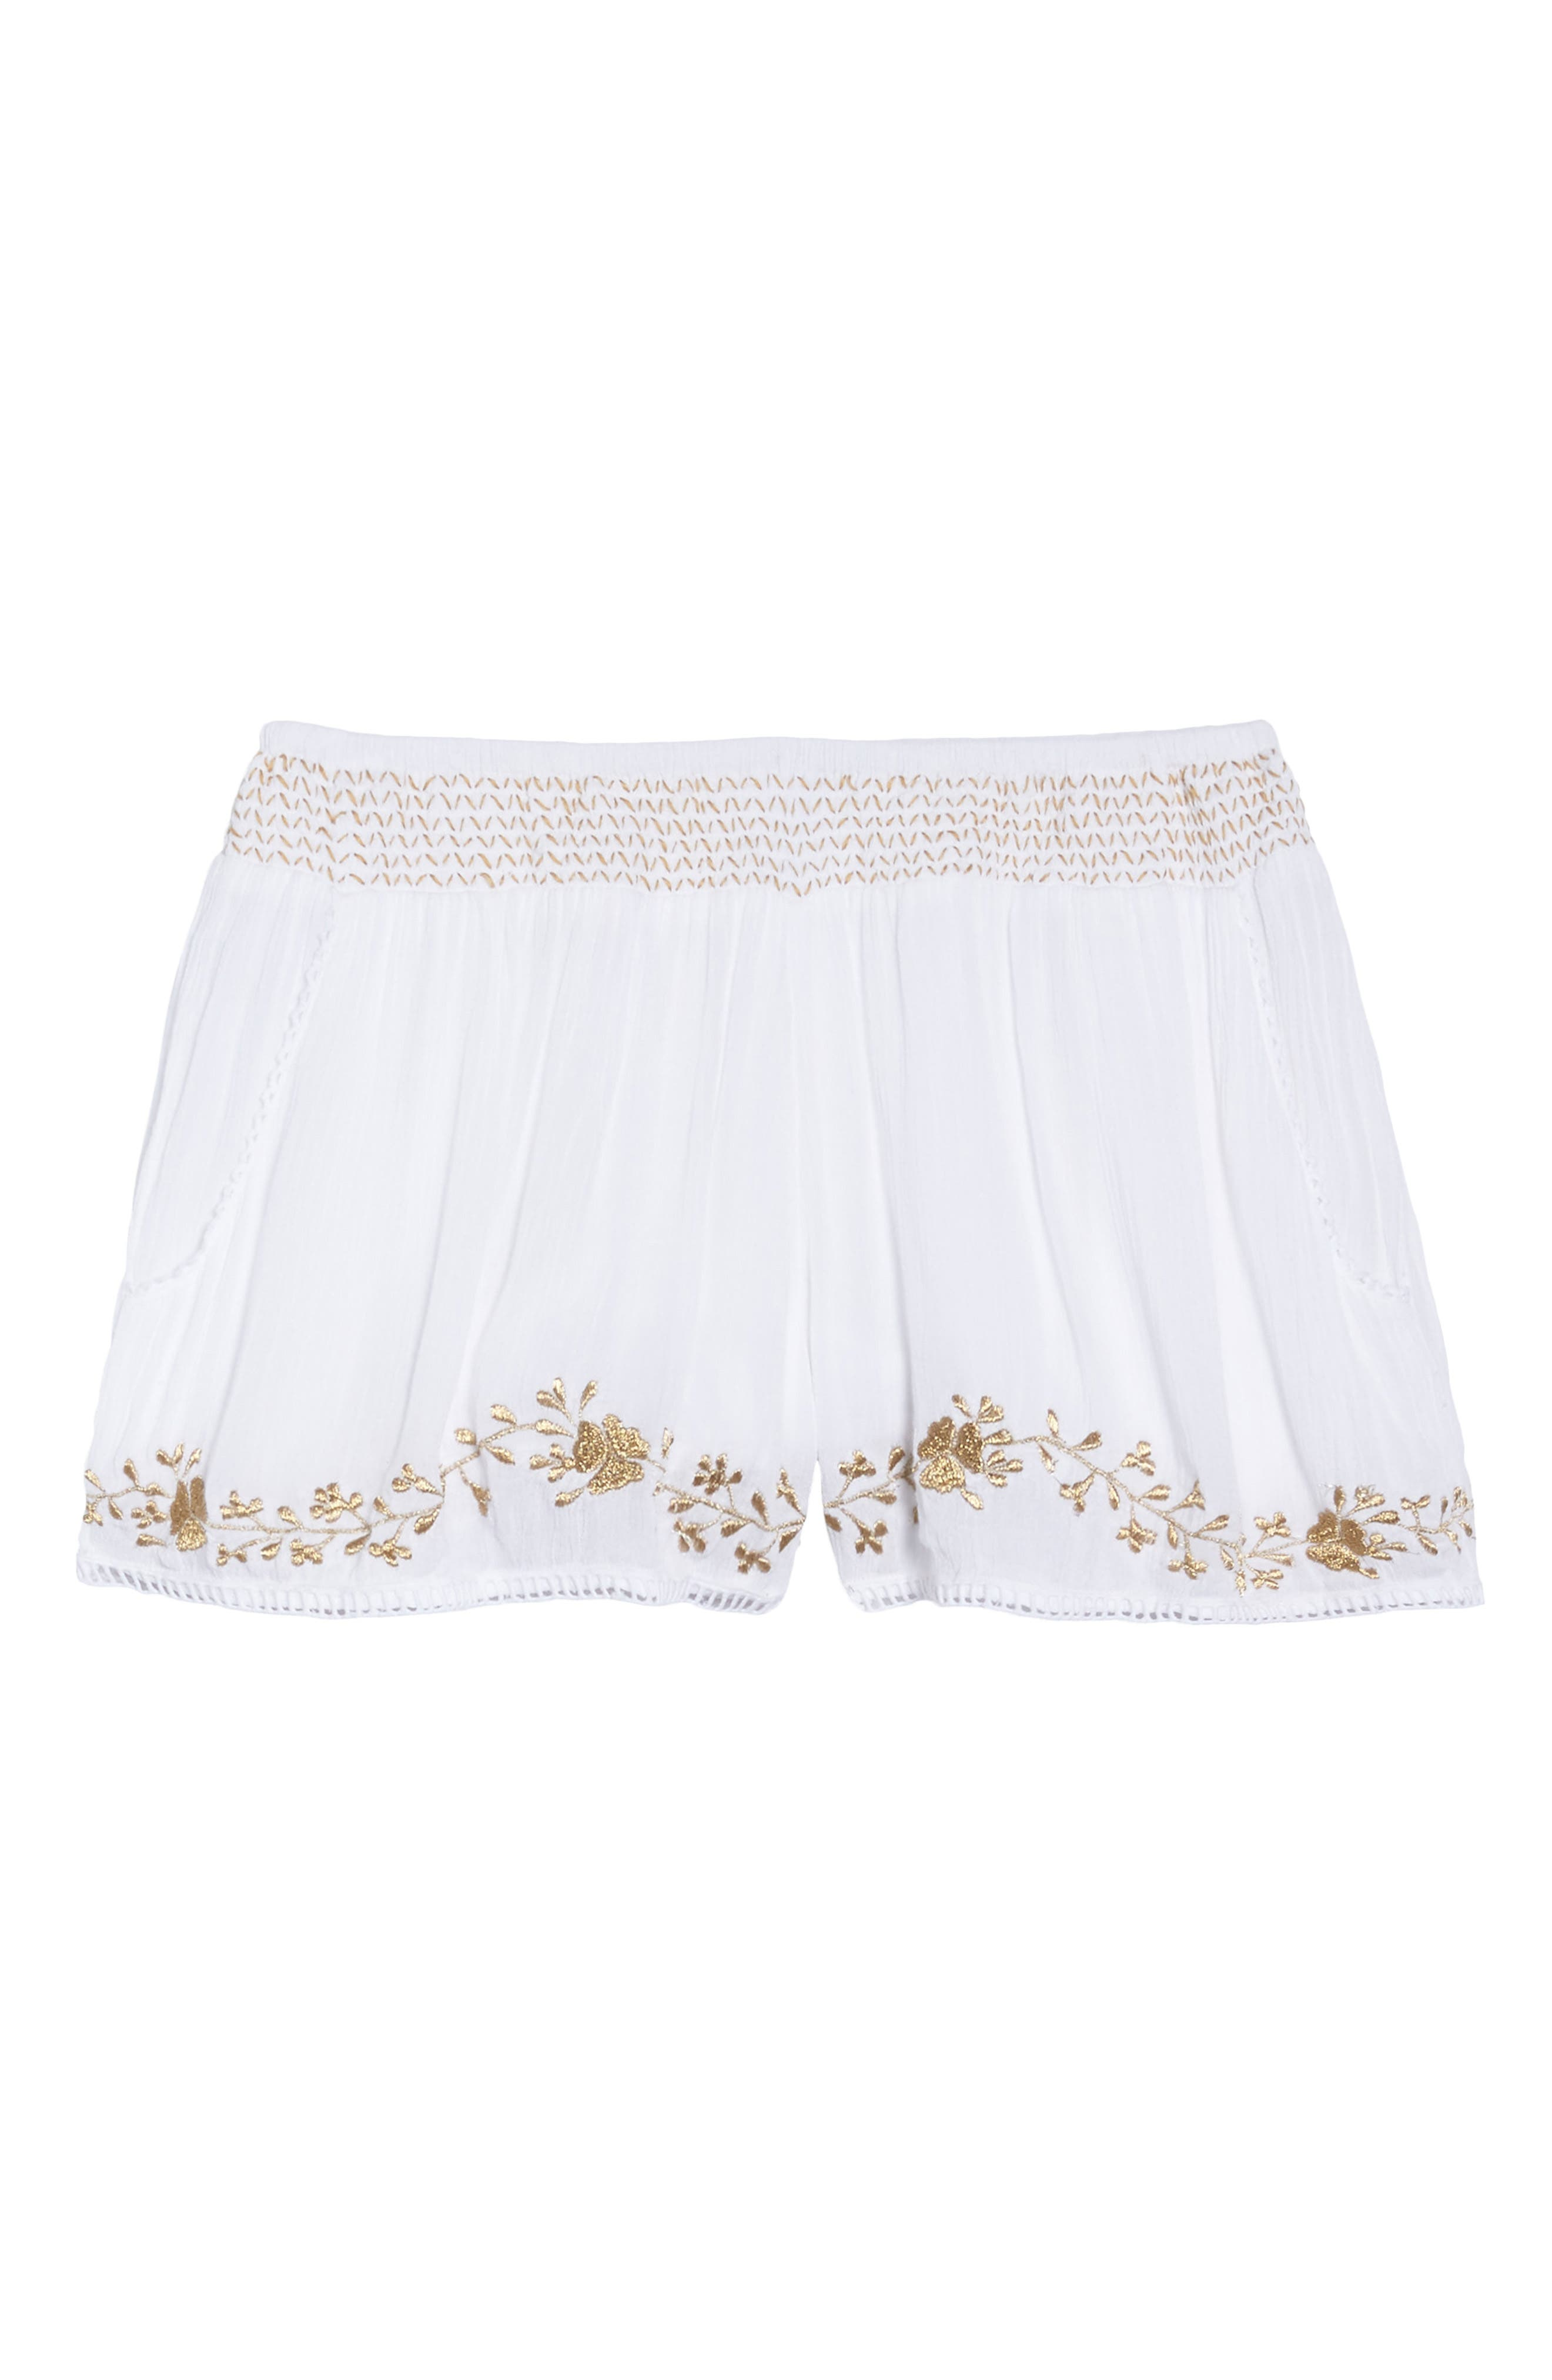 Muche at Muchette Cleopatra Shorts,                             Alternate thumbnail 6, color,                             100